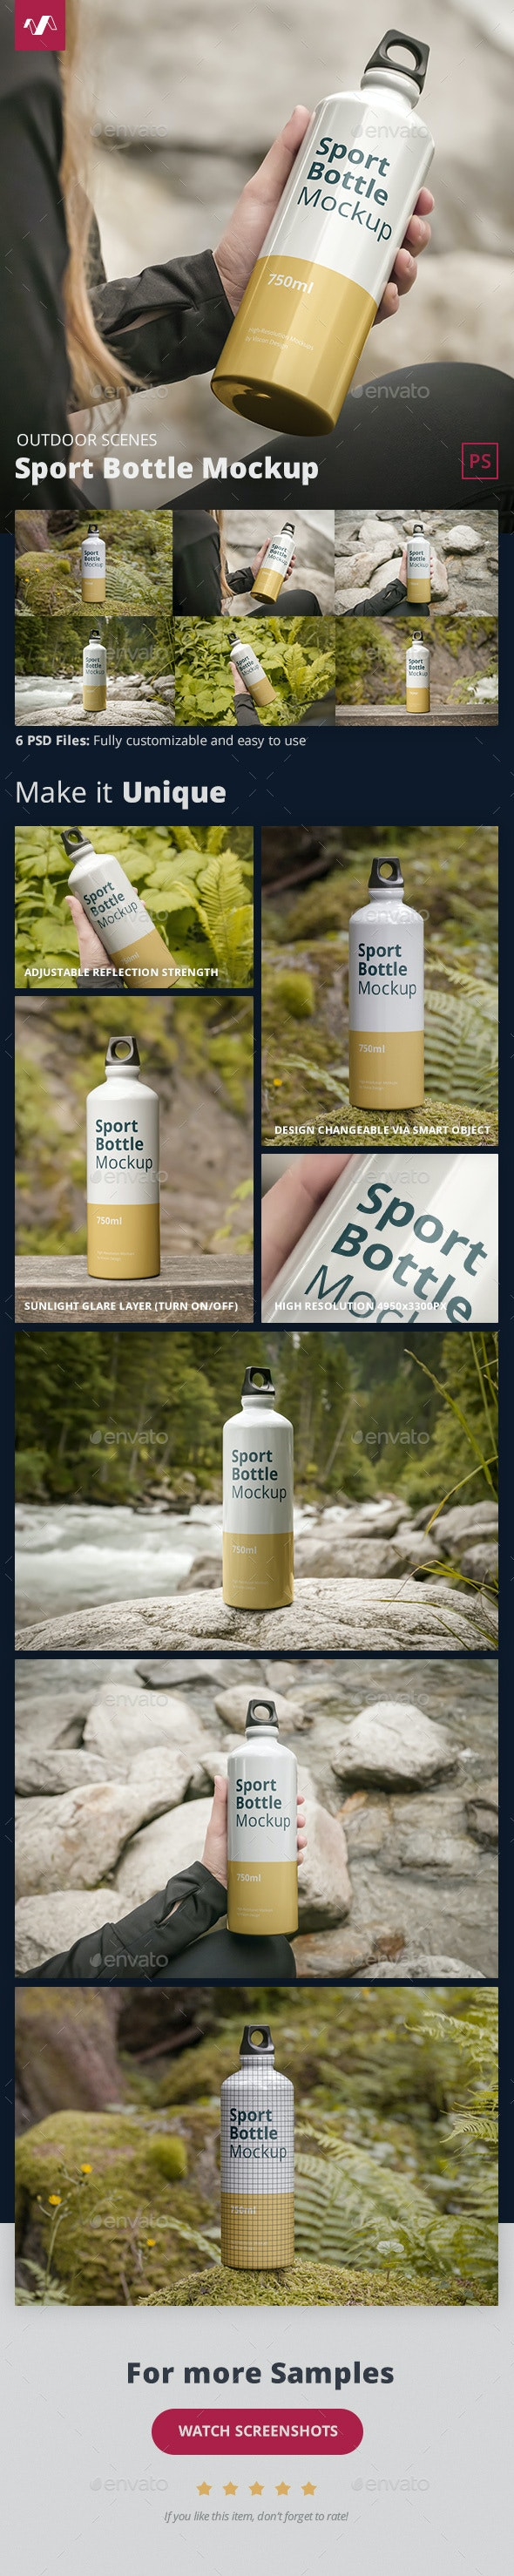 Sport Bottle Mockup Outdoor Scenes - Food and Drink Packaging